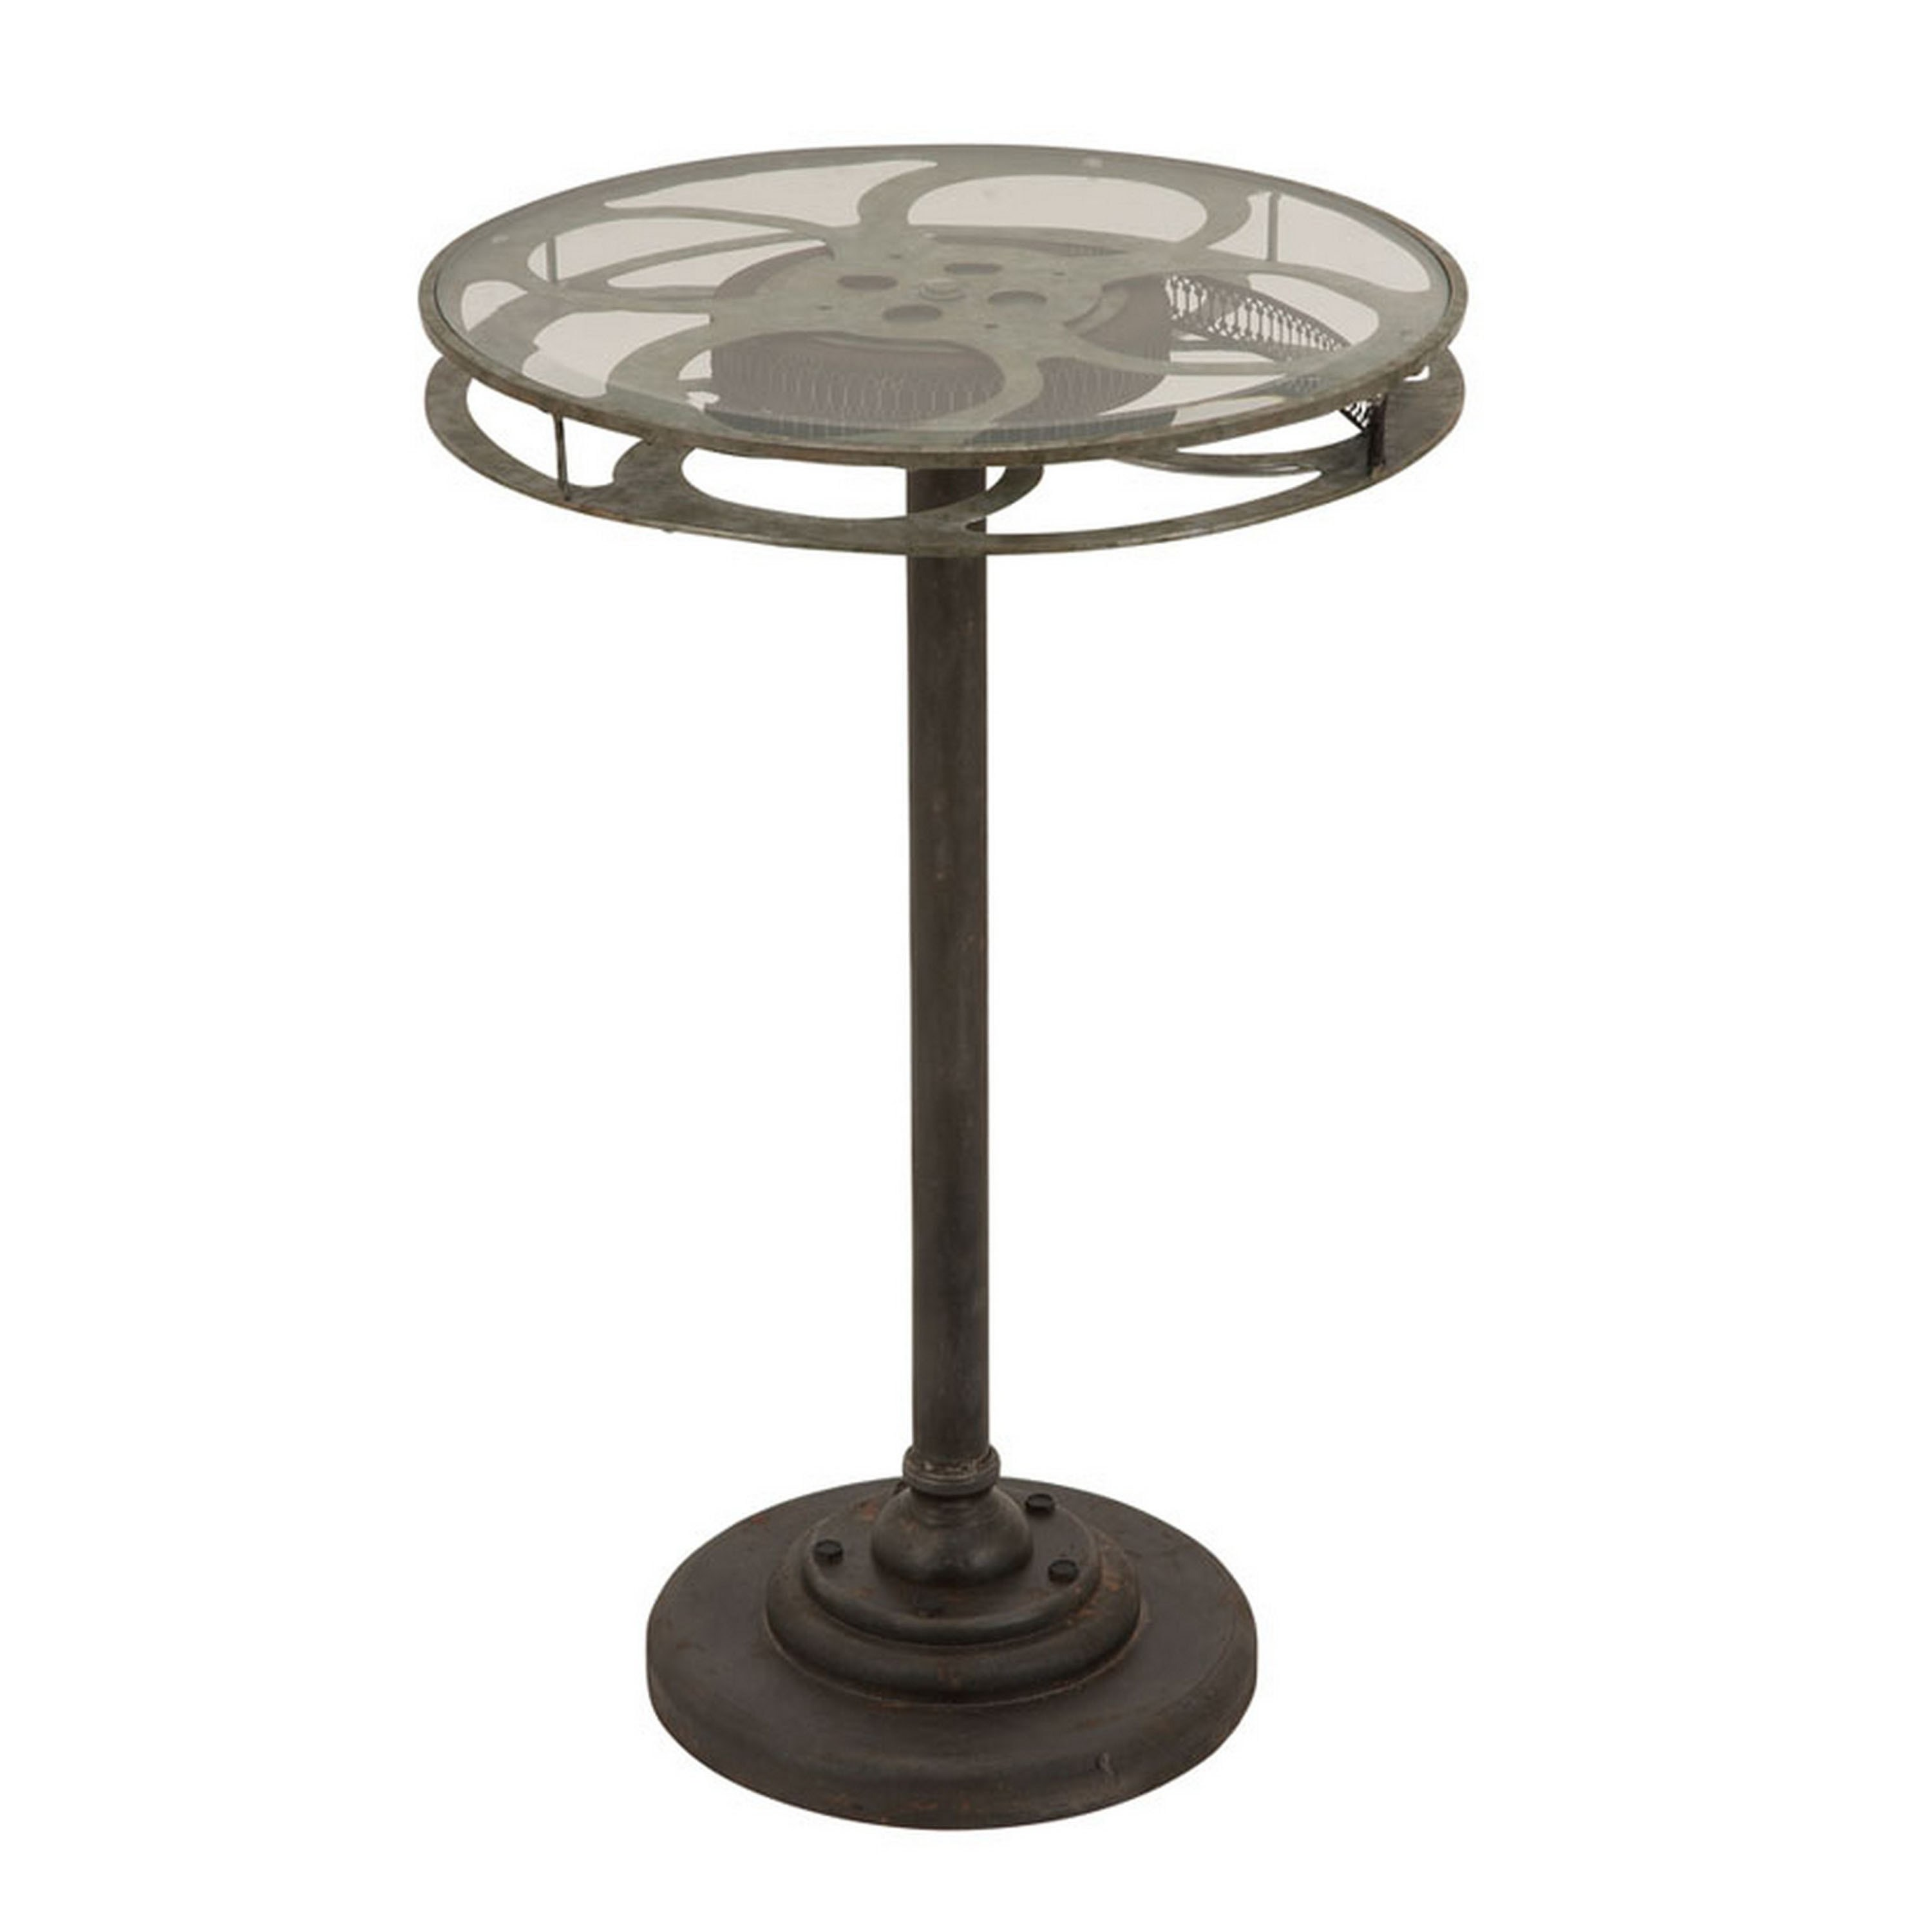 holllywood vintage film reel inch round top table free metal accent shipping today spencer furniture white wicker and chairs ashley desk drawer side navy jcpenney couches dark